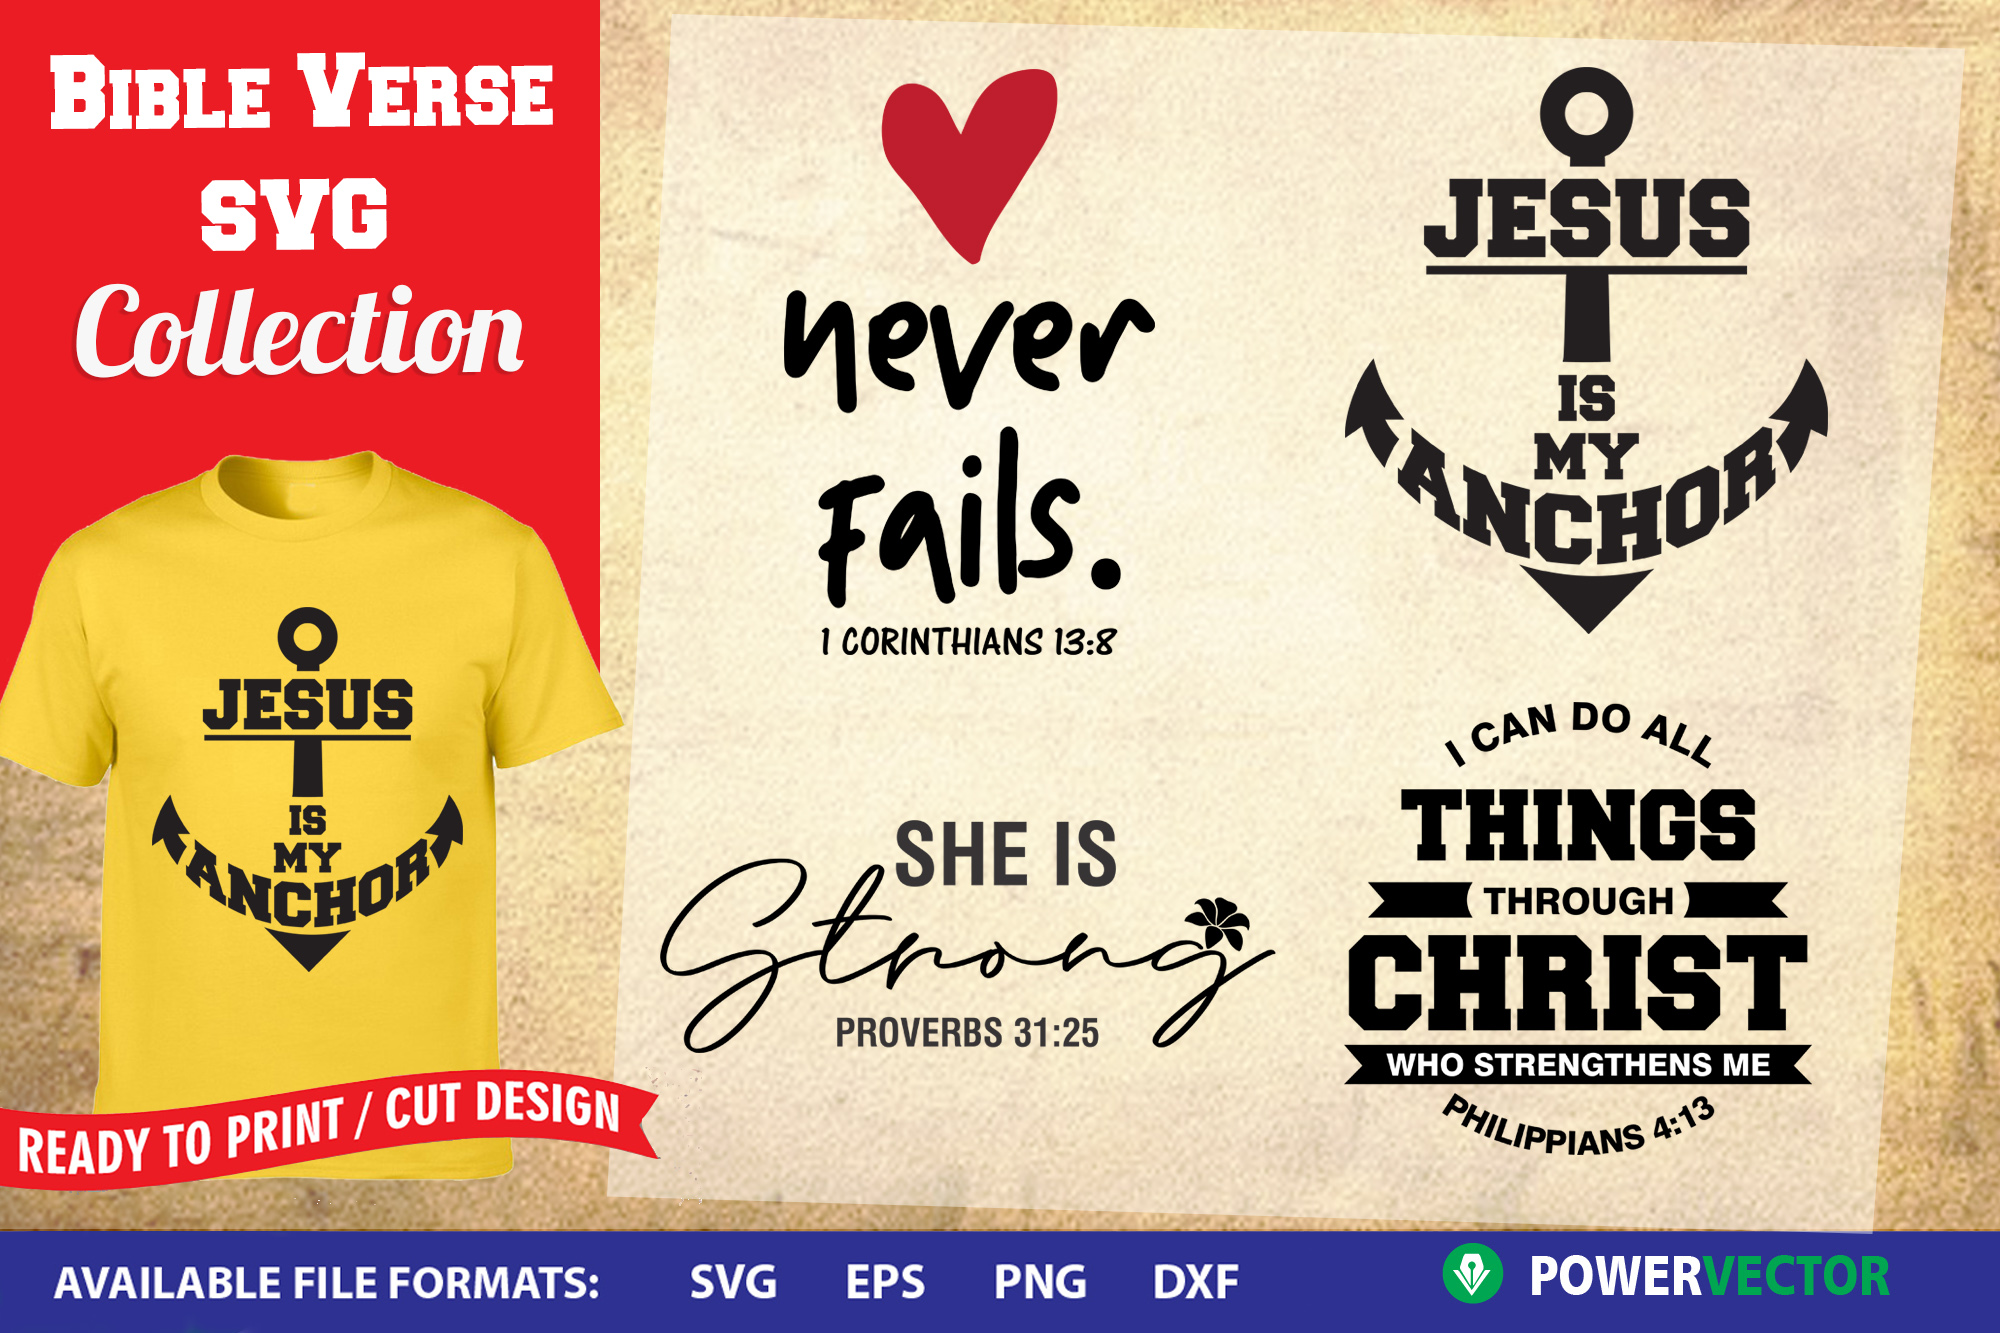 Bible Verse SVG Collection - Ready to cut, print files example image 1